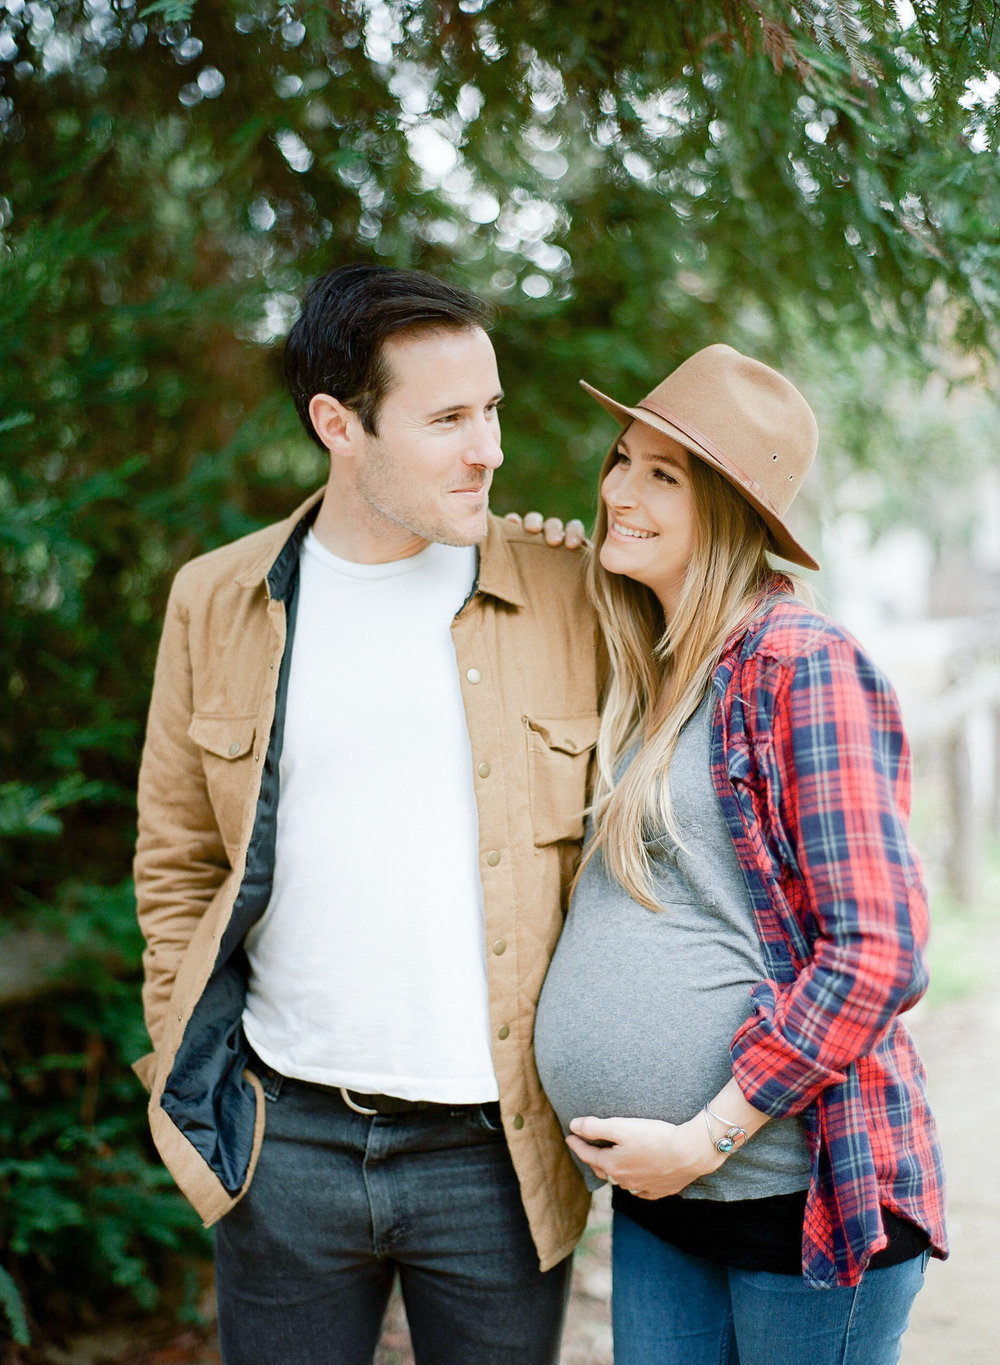 Chrissy & David Maternity Session-17.jpg